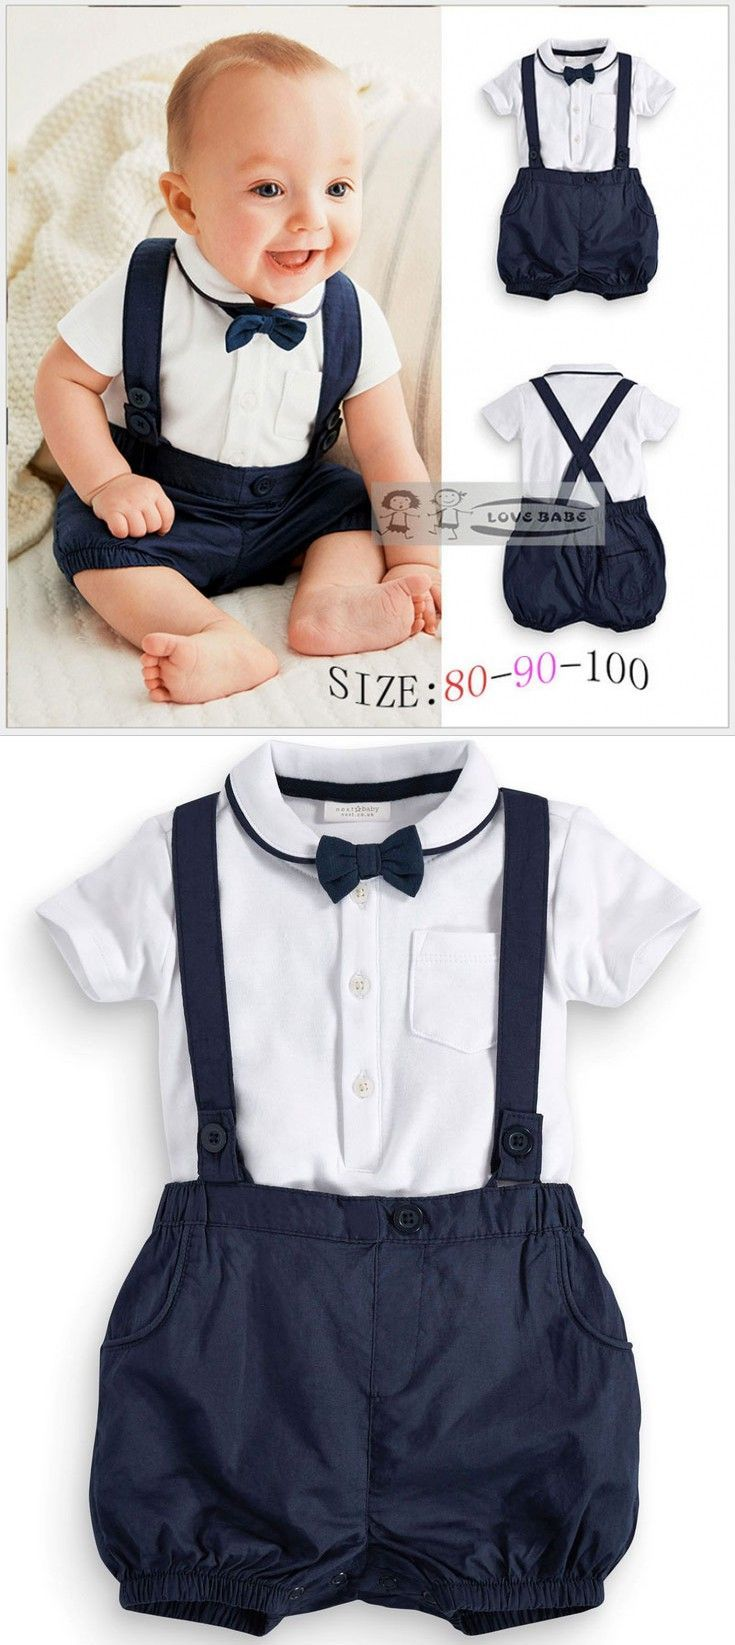 Summer Baby Clothing Cotton 2pcs Suit Short Infant Boy Gentleman Suspender Gift Sets For Newborns Christening Suits For Boys alles für Ihren Erfolg - www.ratsucher.de